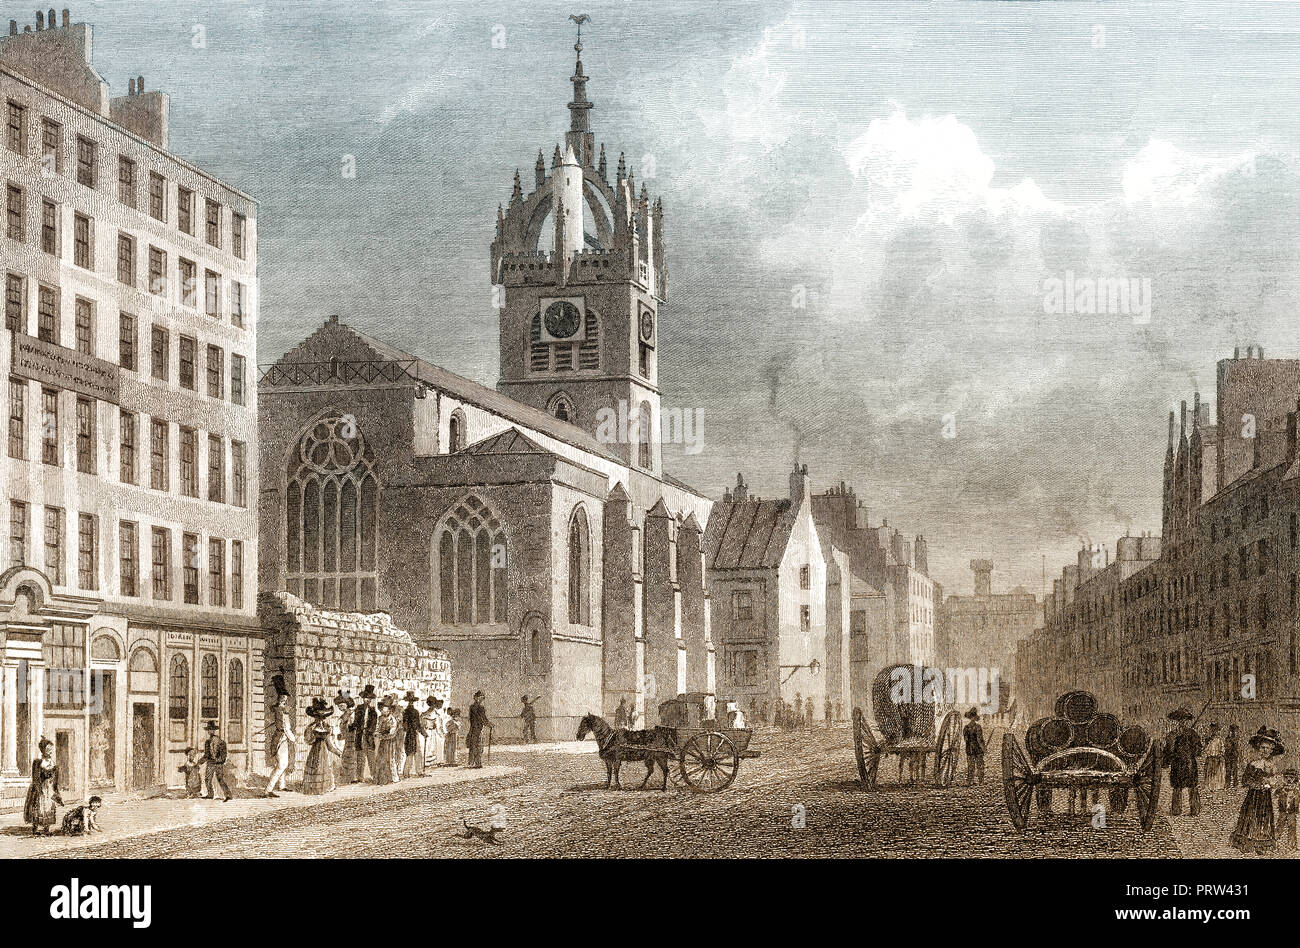 St Giles' Church, looking West, Edinburgh, Scotland, 19th century, from Modern Athens by Th. H. Shepherd - Stock Image